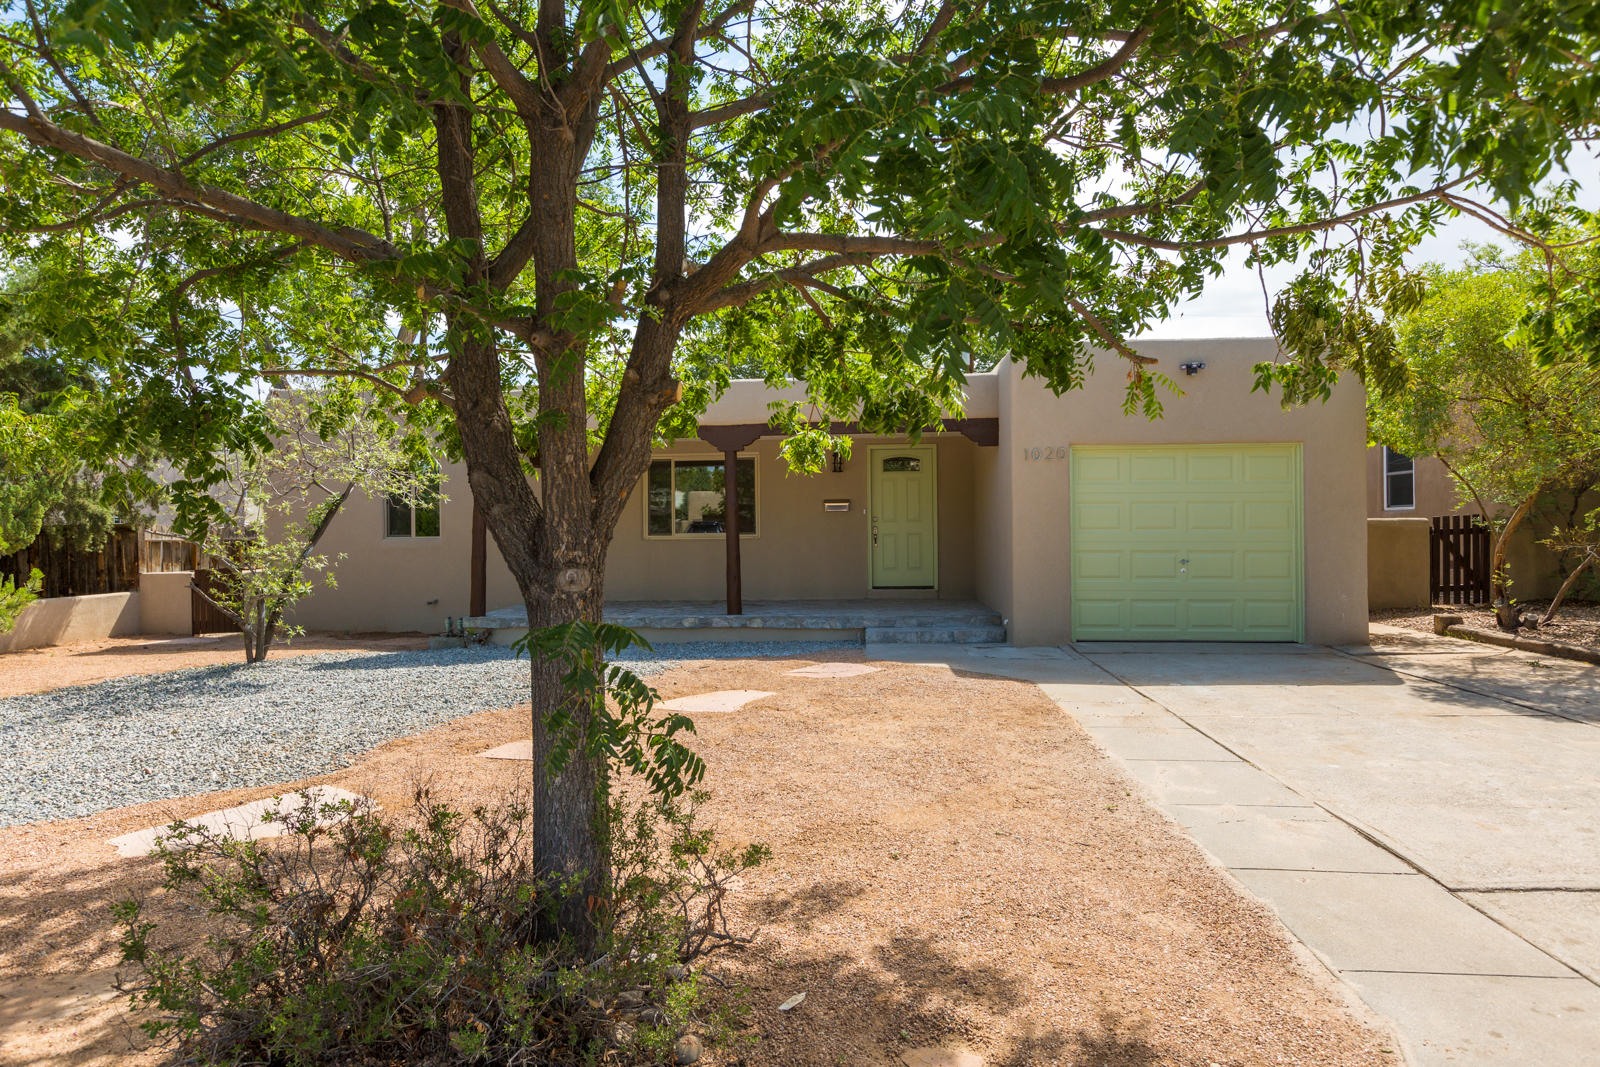 Beautiful fully remodeled home located in the UNM area! Home features 1,220sf with 3 bedrooms, 2 bathrooms and a garage. Upgraded laminate wood flooring throughout the main living areas.  Gorgeous new eat-in kitchen with custom cabinetry, granite countertops, tile subway back splash, stainless steel appliances, kitchen bar with stone accents. Owners suite with private bath! New bath with a custom vanity and a large walk-in shower with a custom tile surround. Great backyard fully fenced for privacy and a large covered patio.  New windows, new cool/combo, paint, hot water heater and more!  Near UNM & Nob Hill!